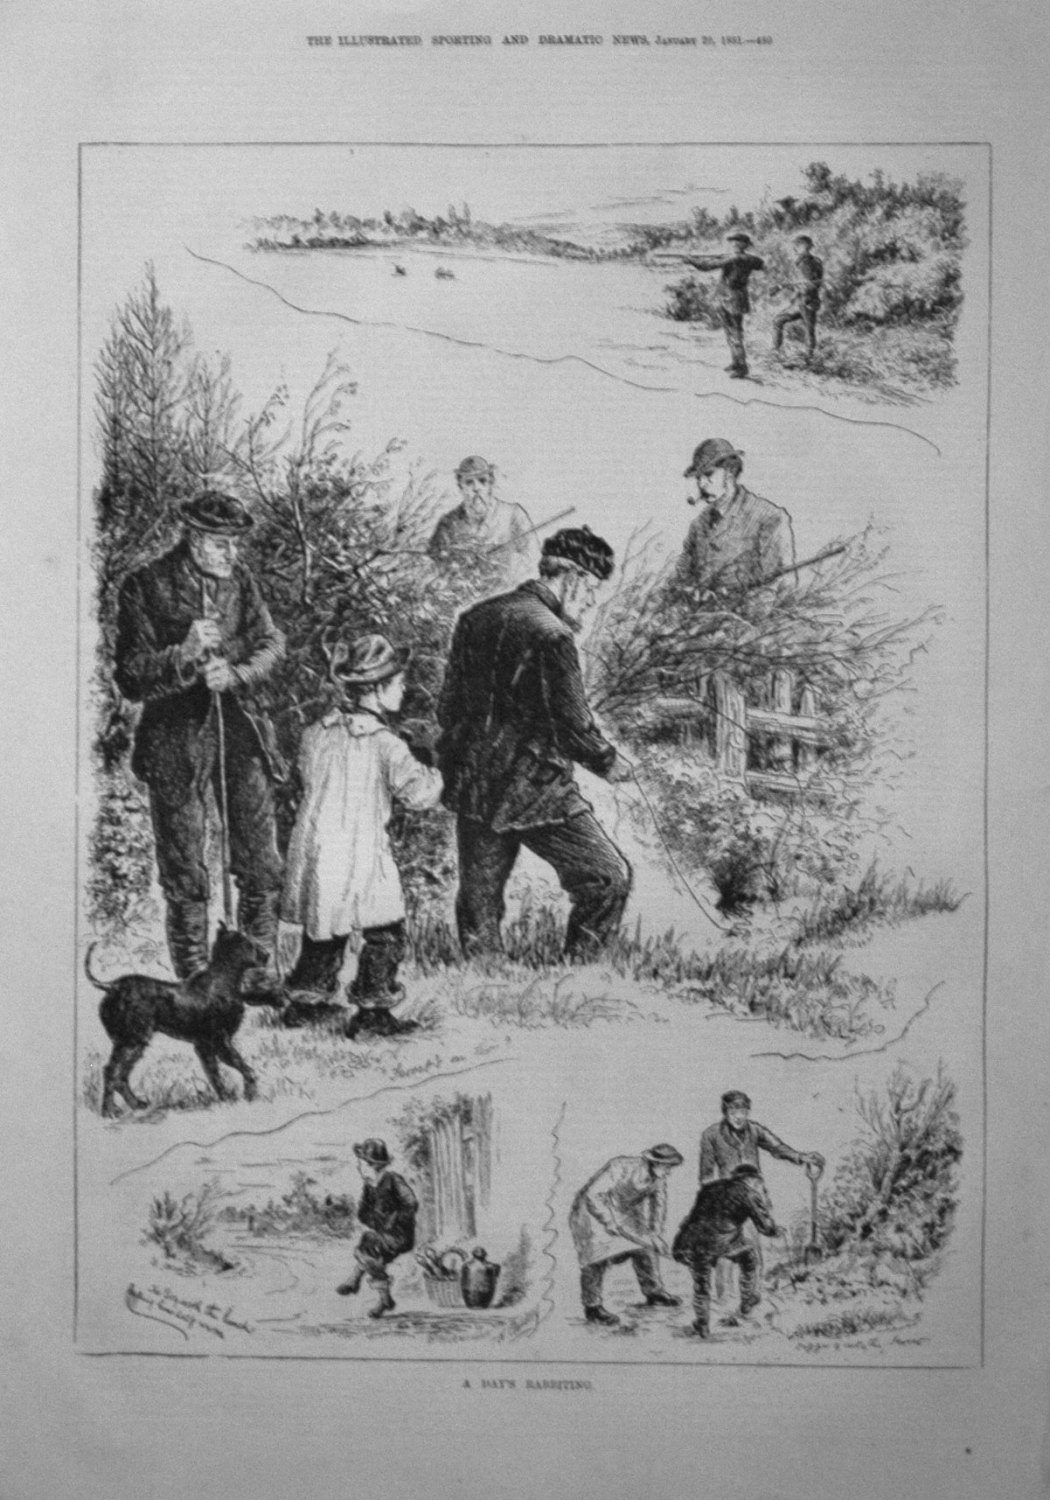 A Day's Rabbiting. 1881